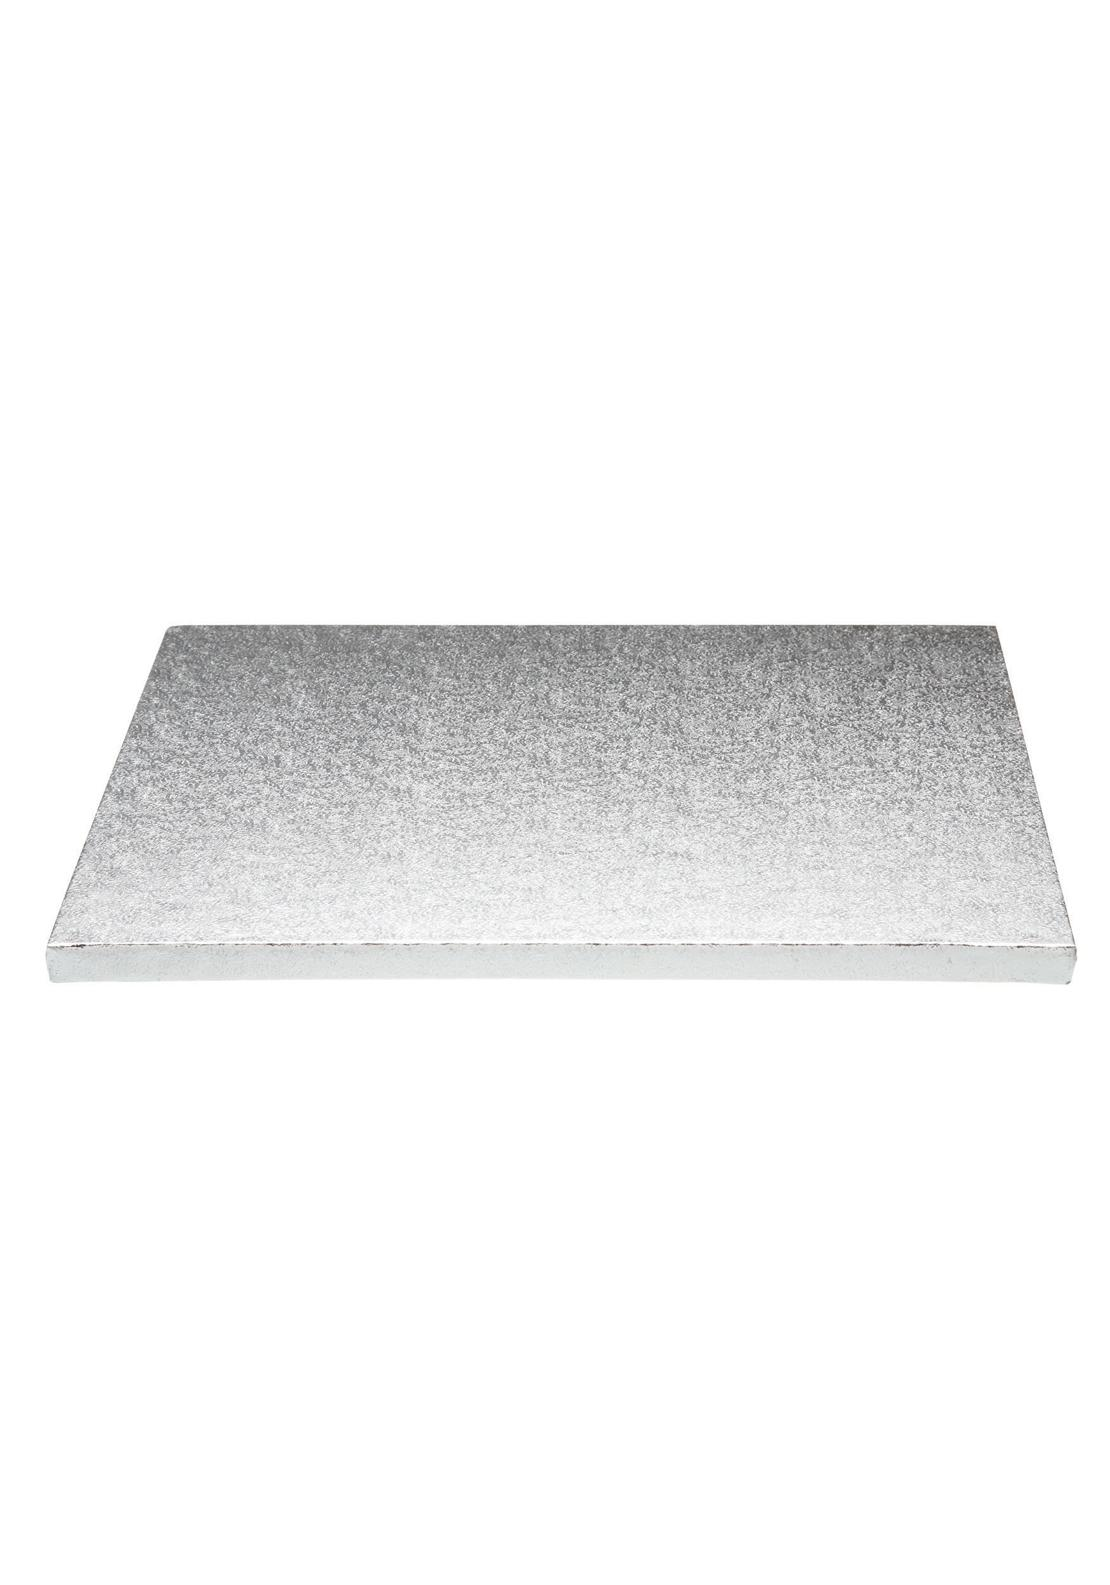 Sweetly Does It Square 30cm Cake Board